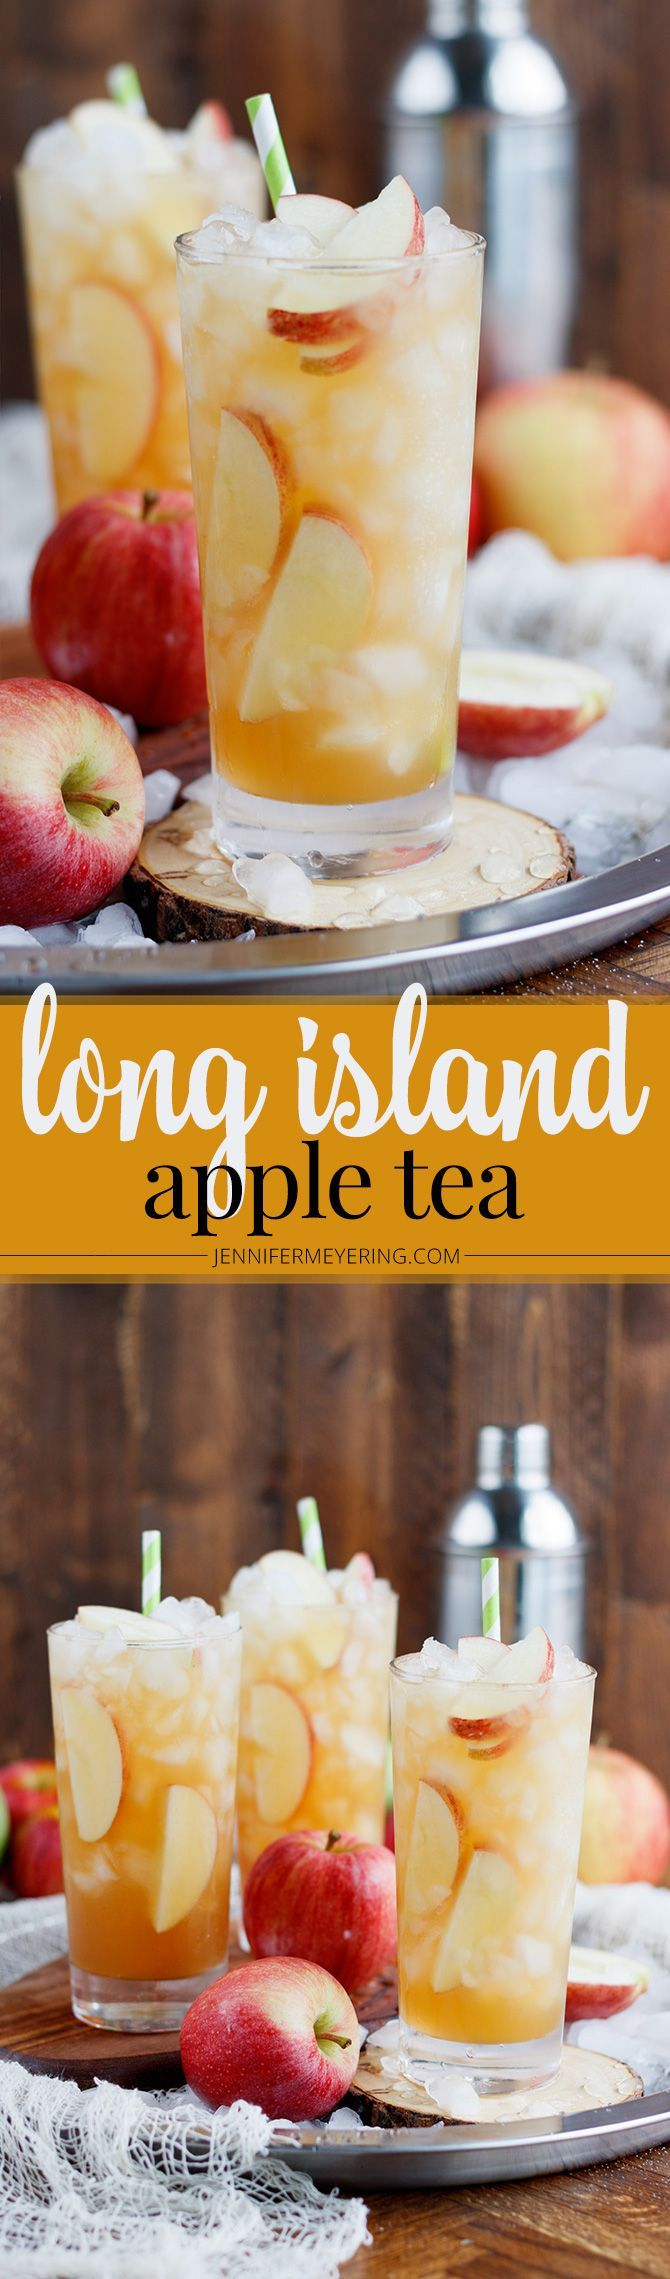 Long Island Apple Iced Tea - 1 oz triple sec  1 oz light rum  1 oz gin  1 oz apple vodka  4 oz apple cider  2 oz lemon-lime soda